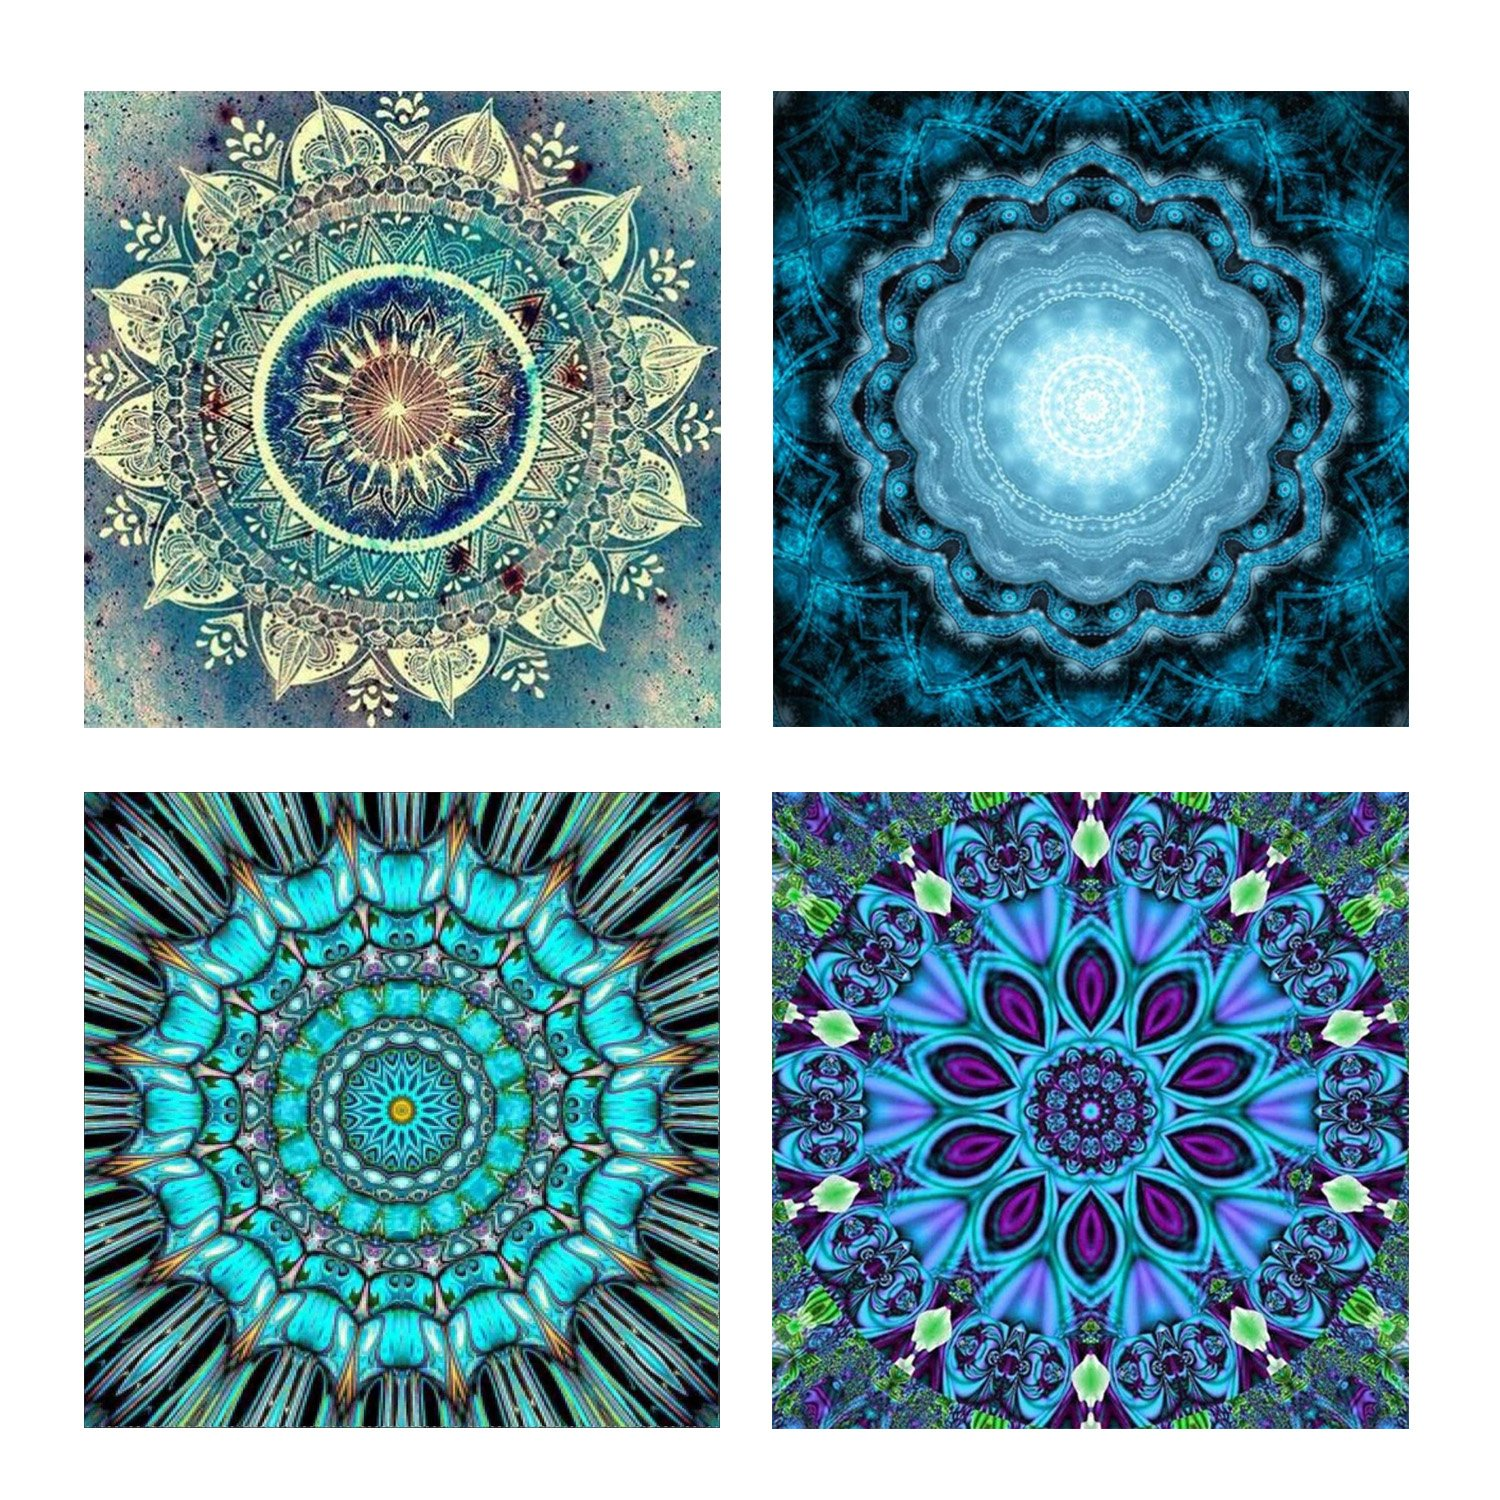 4 Pack 5D DIY Diamond Painting Set Decorating Cabinet Table Stickers Full Drill Rhinestone Diamond Embroidery Paintings Pictures, Mandala Flower Painting(25X25CM/9.8X9.8inch) by SOTOGO